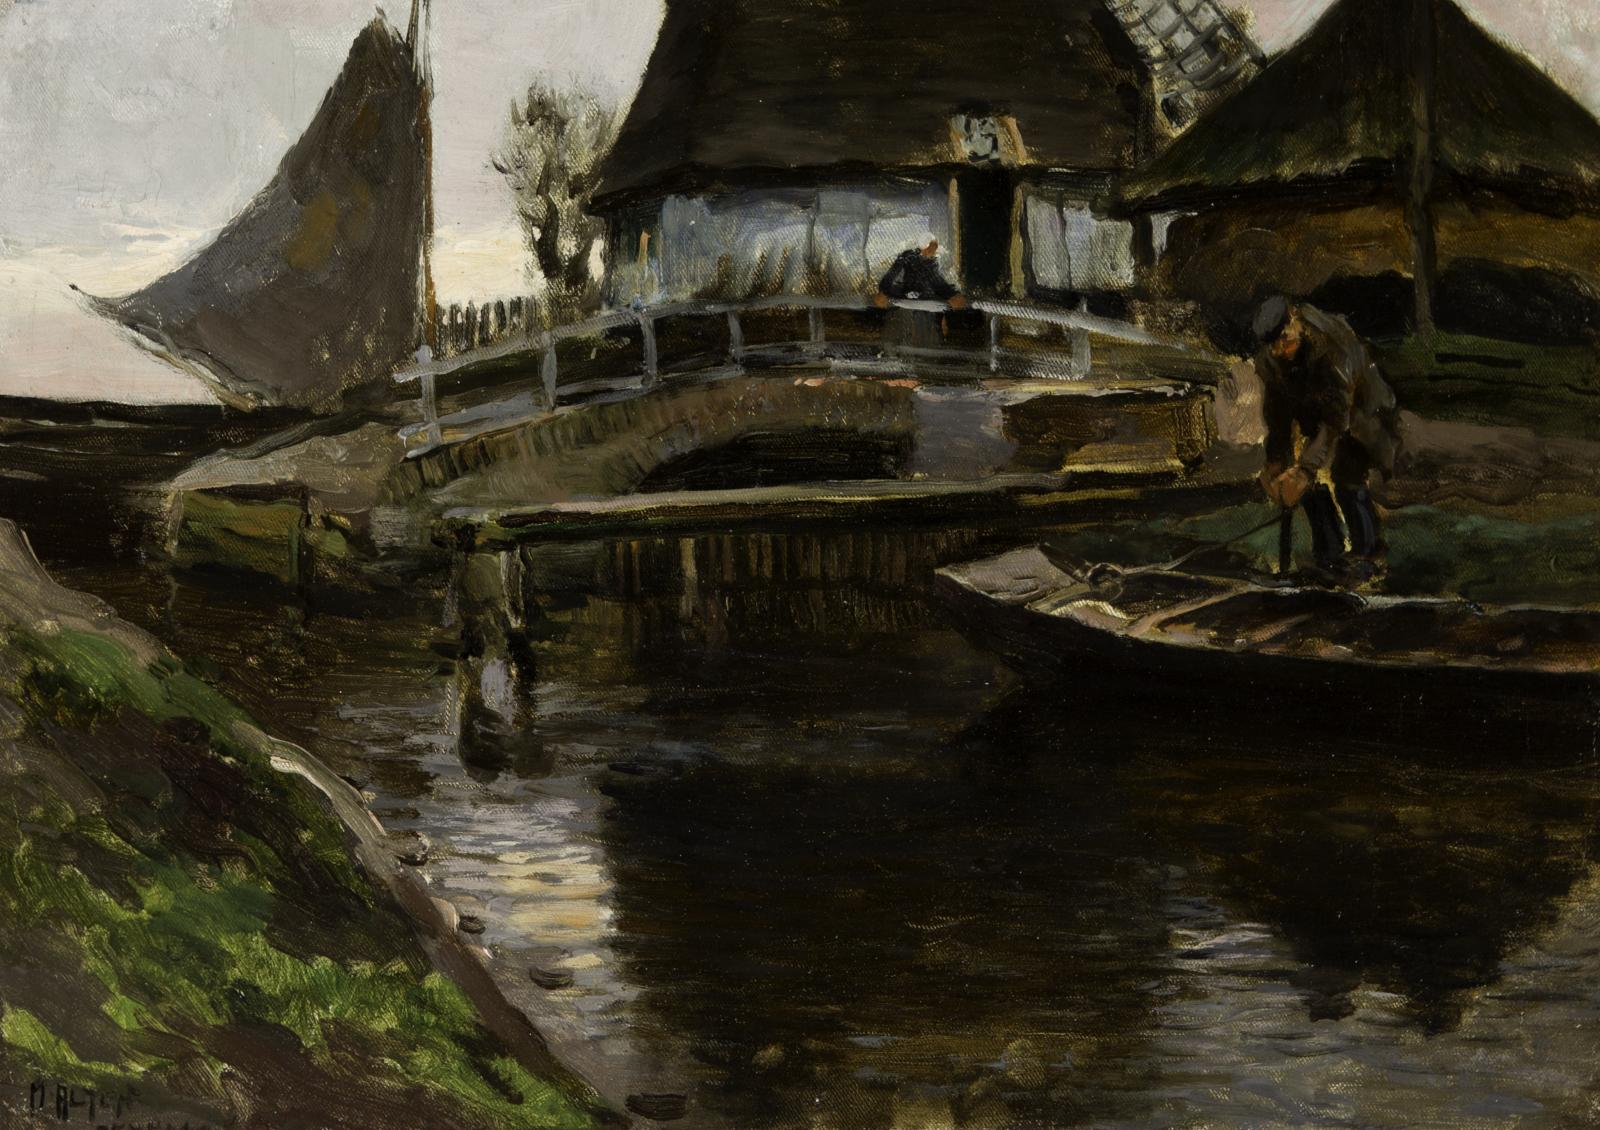 Man in small boat on the right side of the image, coming up to a white bridge with two buildings in the background.